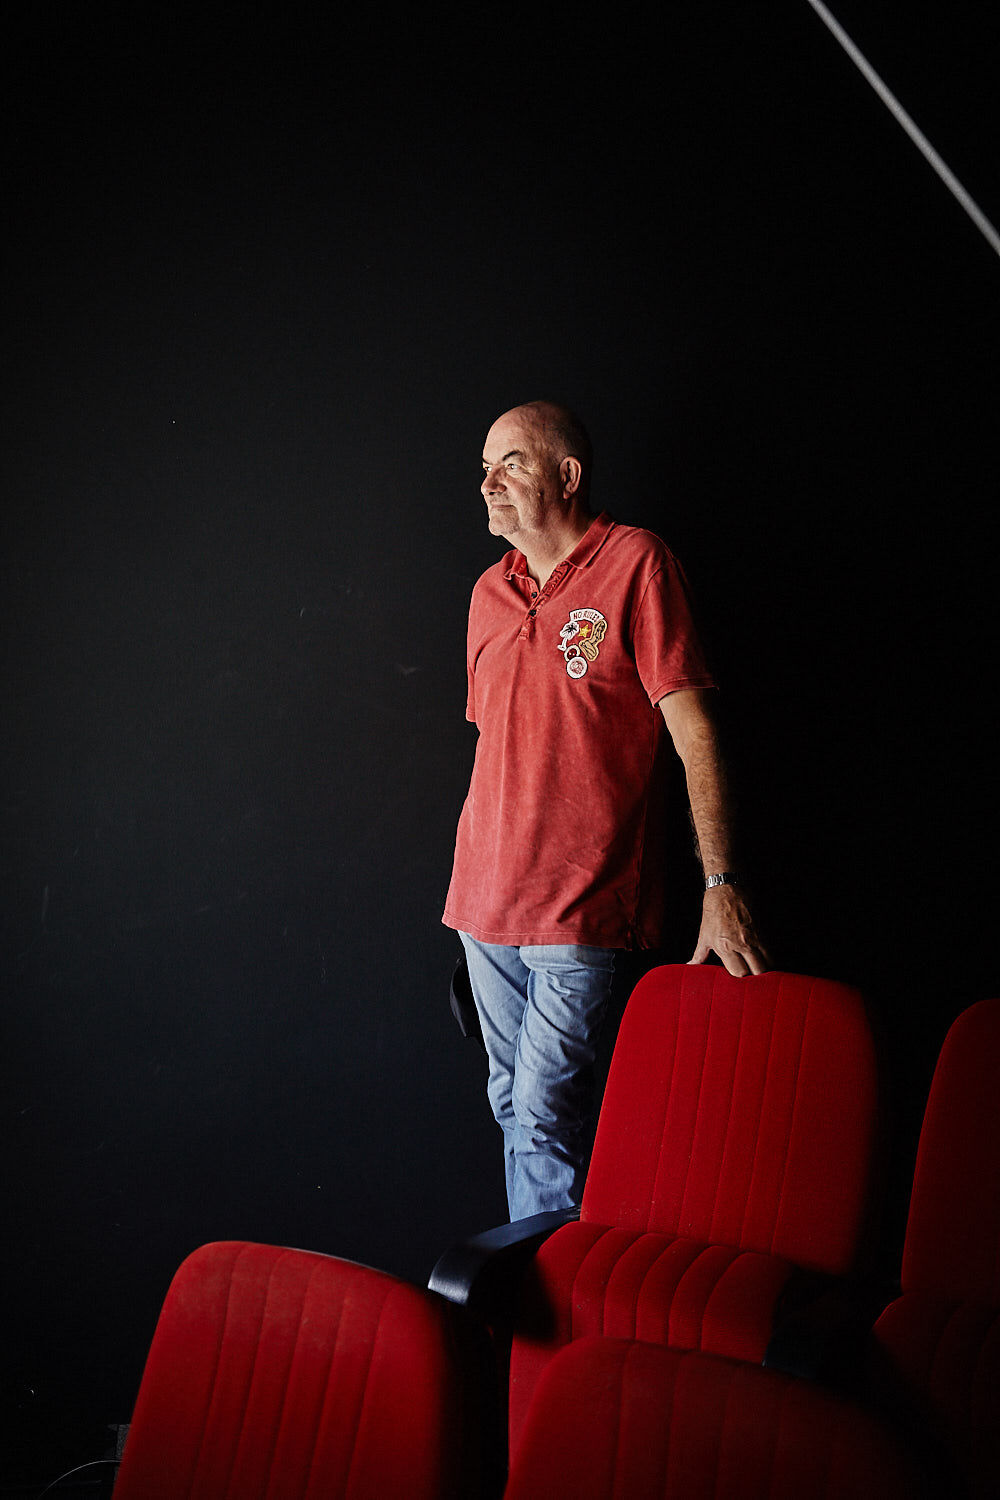 Thomas Zauner, founder of Scanline, leans against a red cinema chair in the cinema auditorium